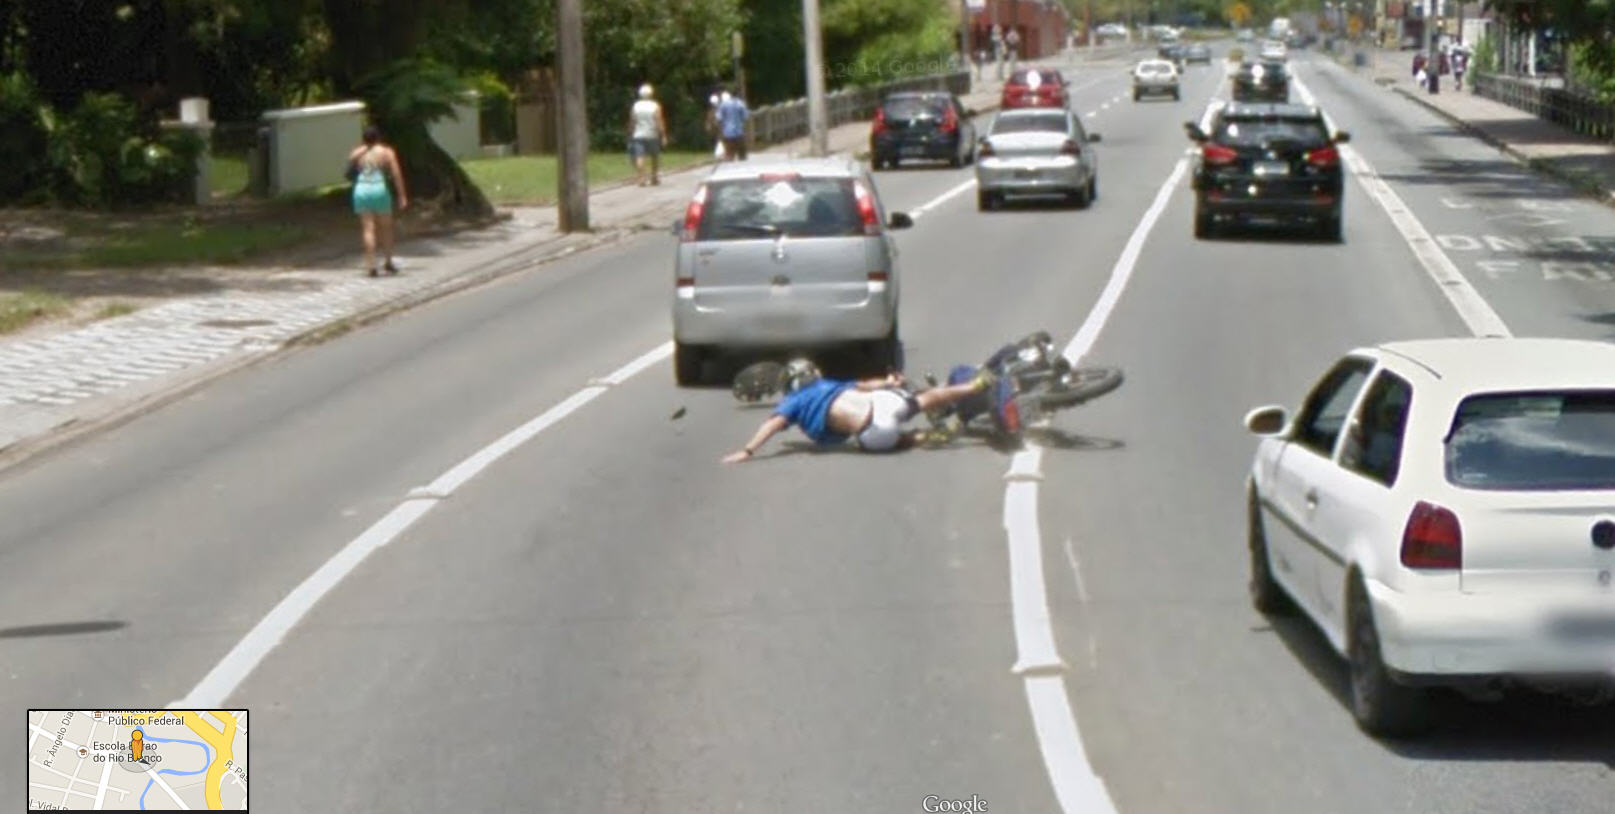 dead guy on google maps coordinates with Motorcycle Accident Captured Frame By Frame Via Google Street View on Motorcycle Accident Captured Frame By Frame Via Google Street View further Shocking Discovered Google Earth Maps Caught On Camera Pictures furthermore Model Photo Bombing Google Street View besides Guatemala Sinkhole 2010 moreover Watch.